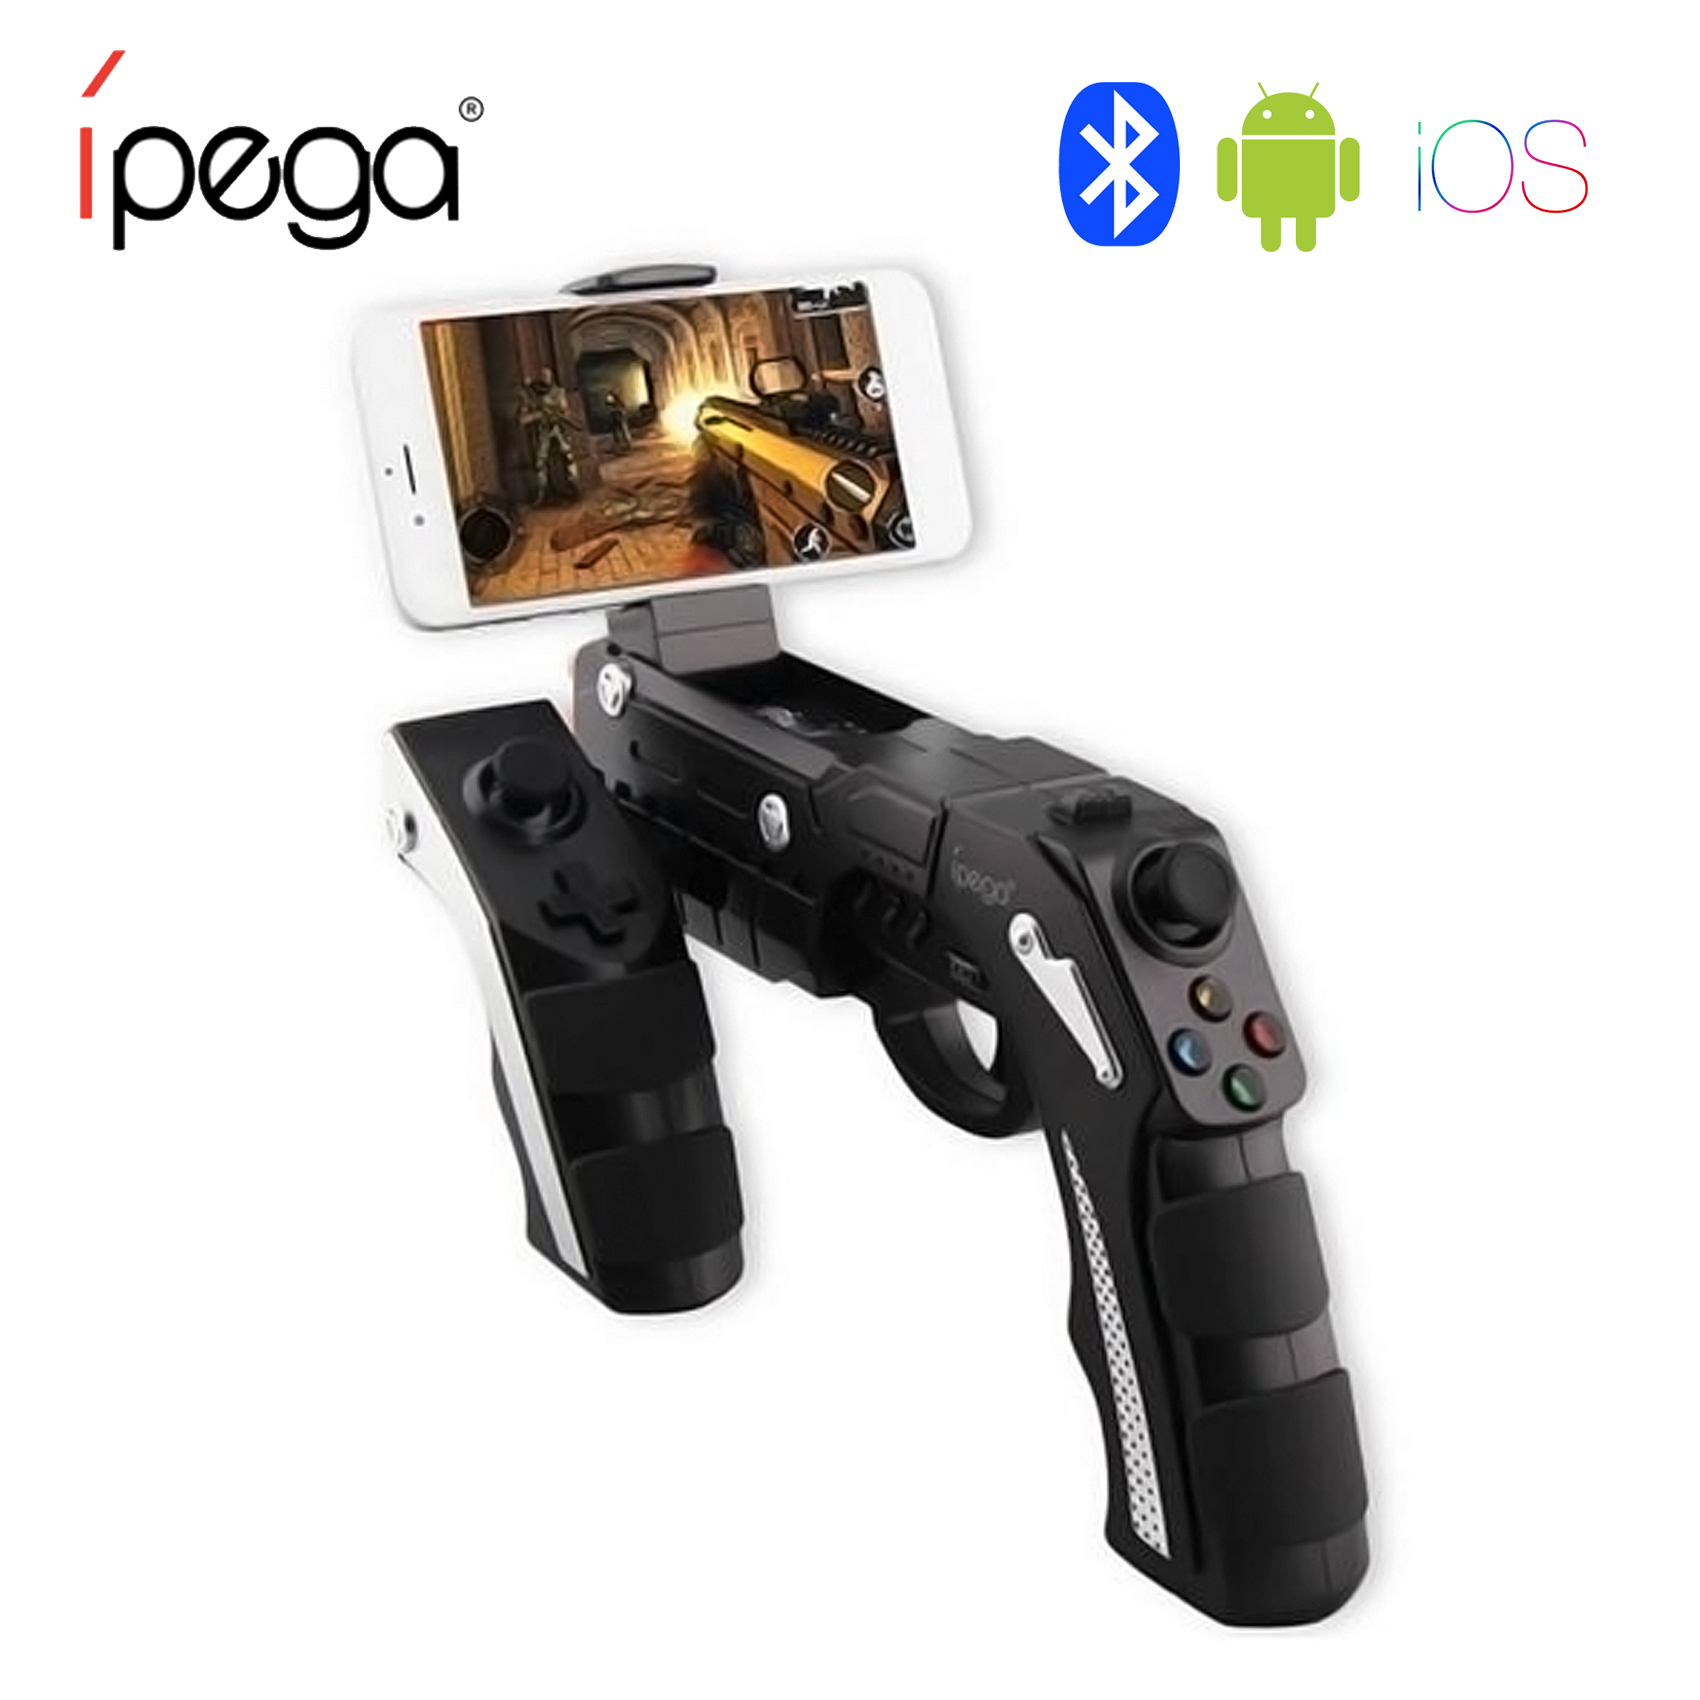 Ipega Phantom Shox Blaster Bluetooth Gun For Android And IOS - Black